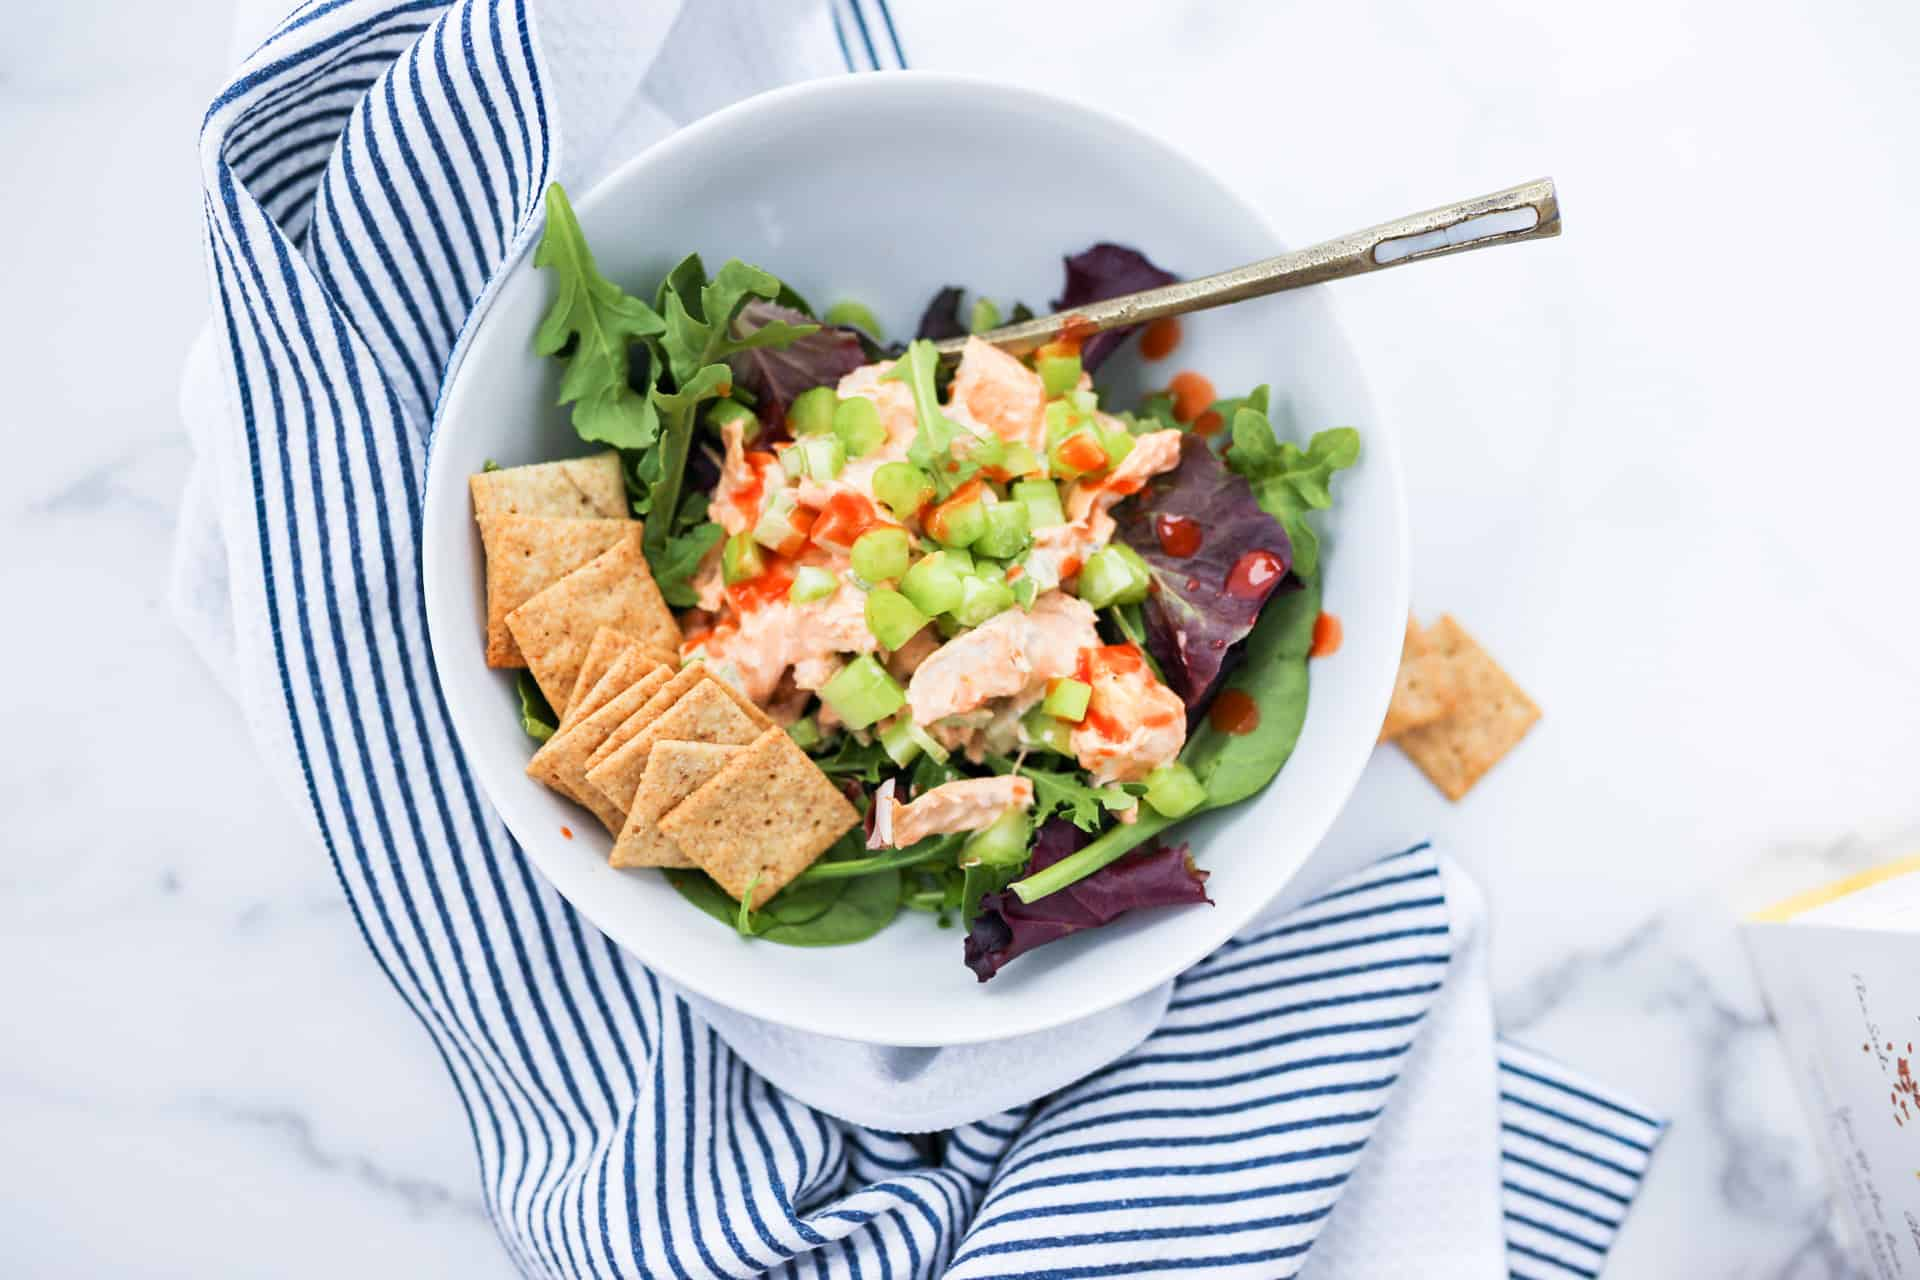 Buffalo chicken salad with crackers